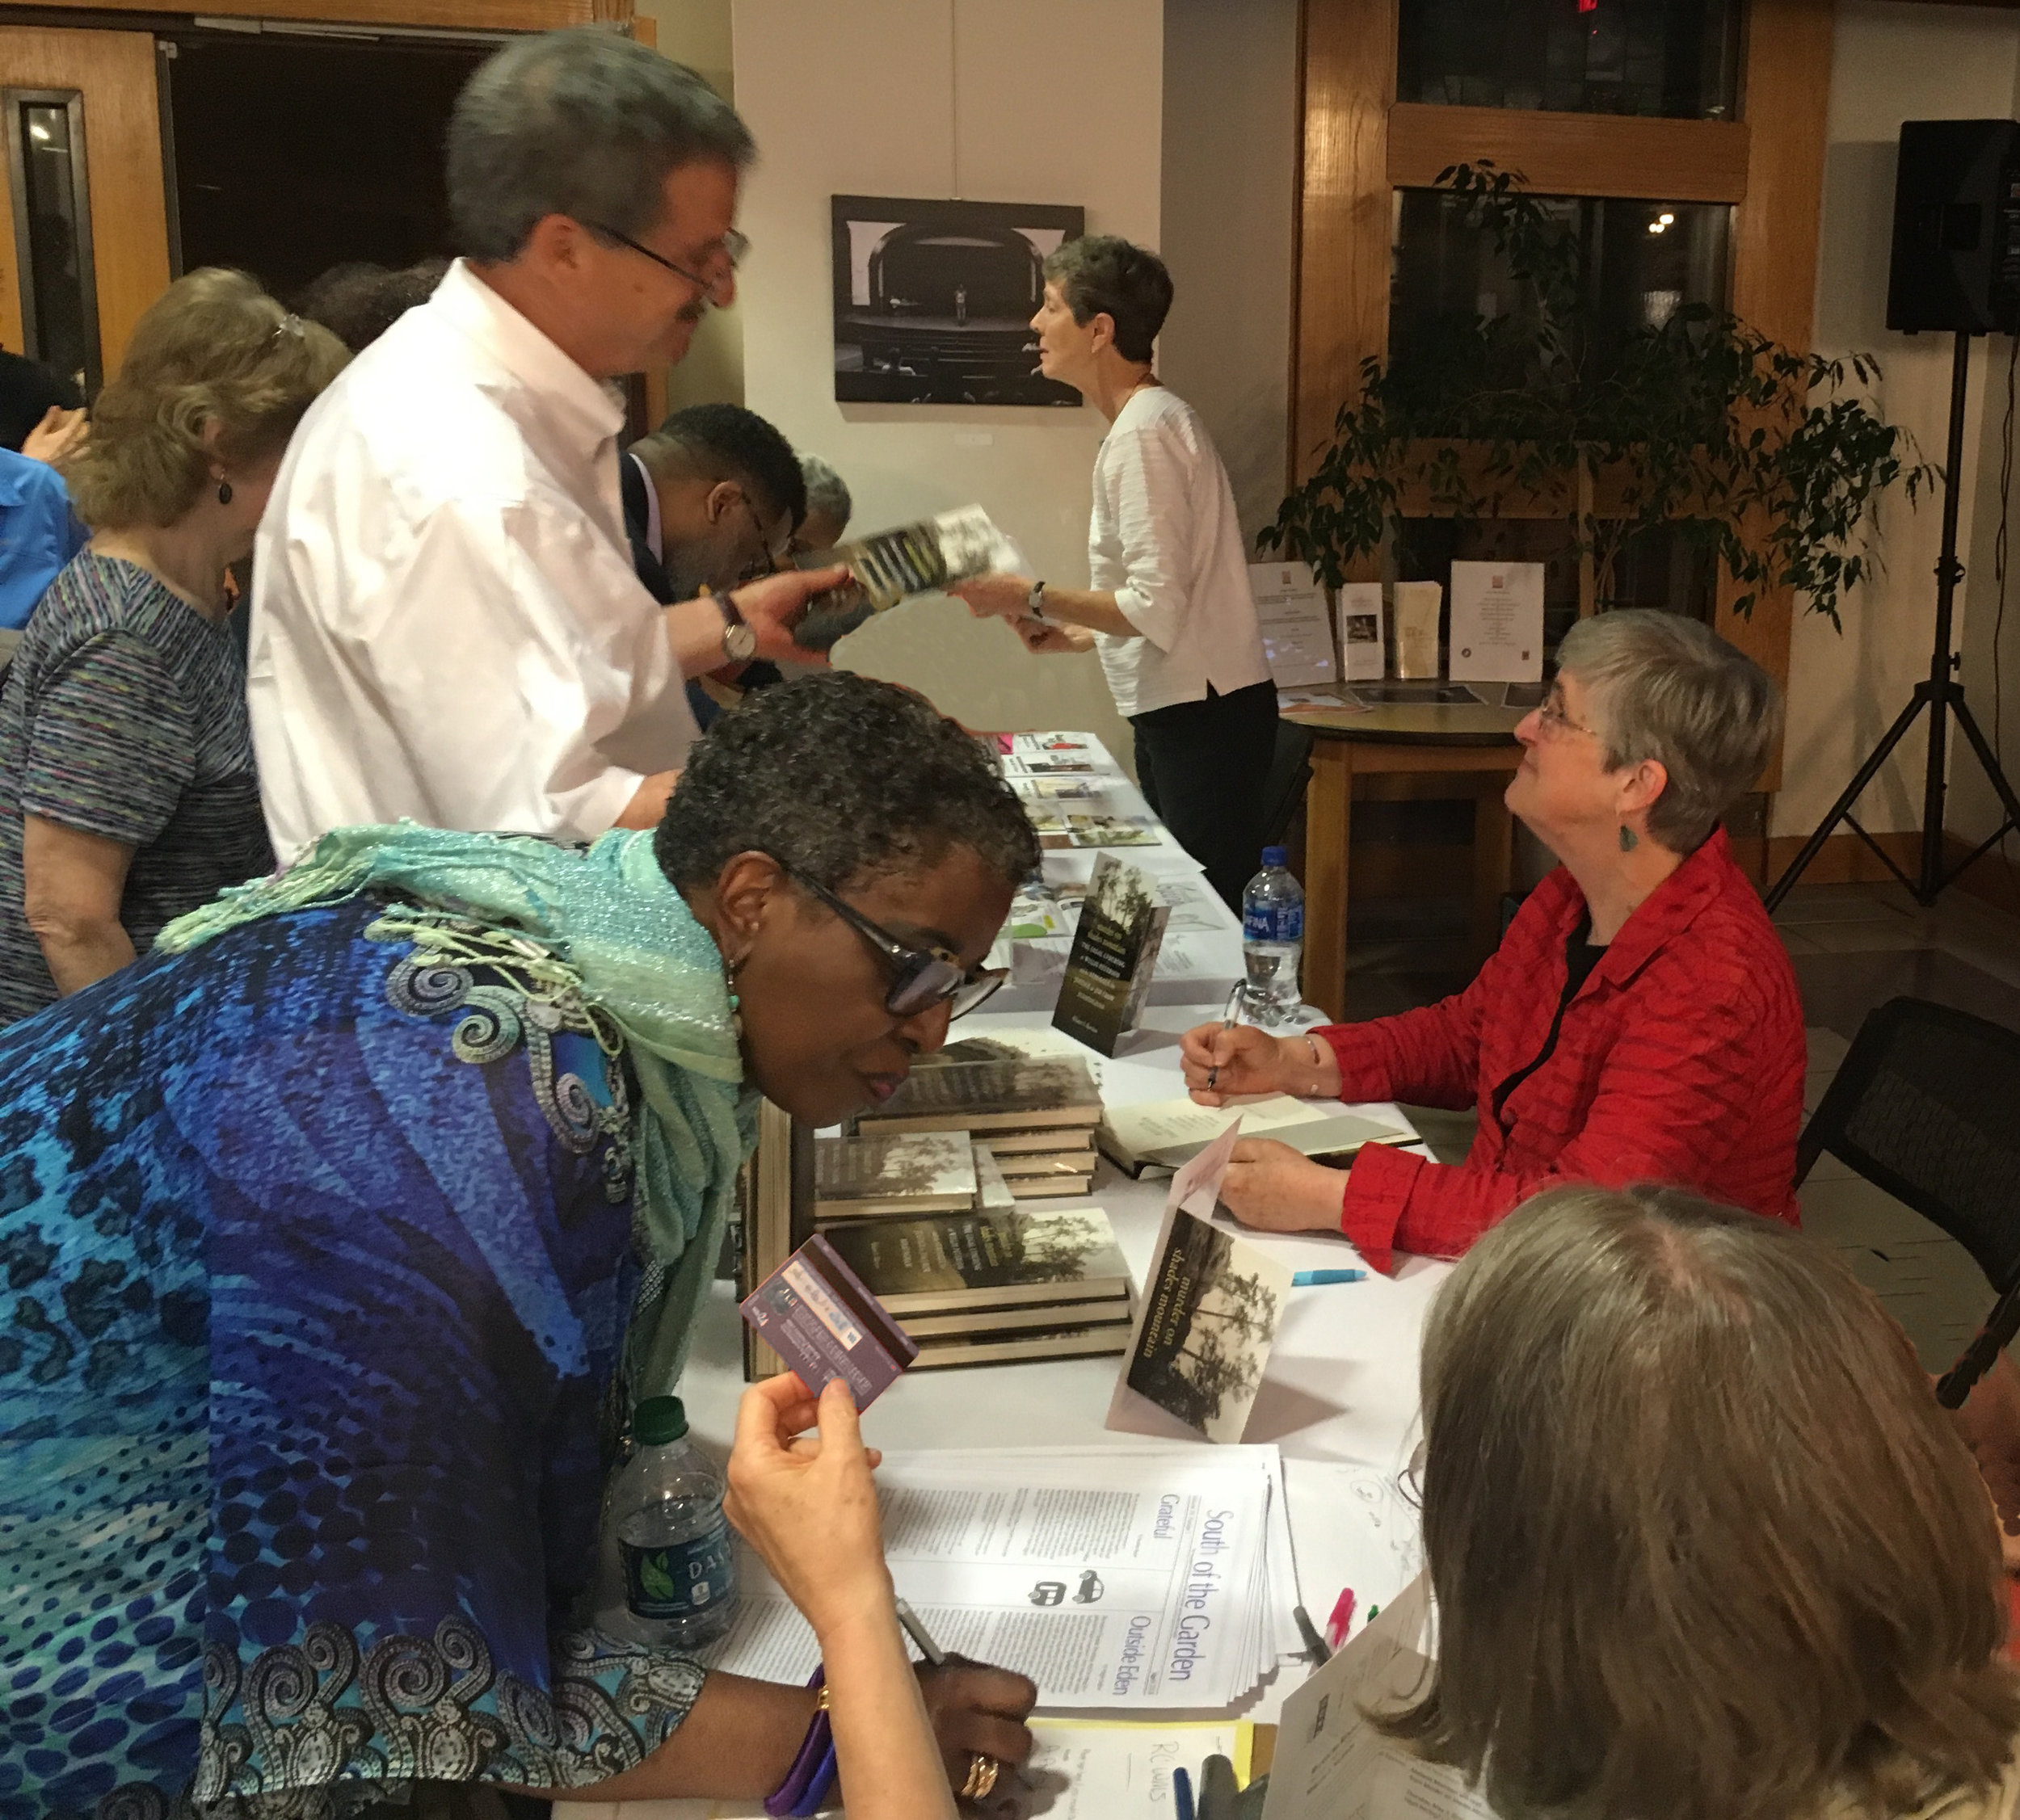 Signing books at the Hayti Heritage Center in Durham, N.C.